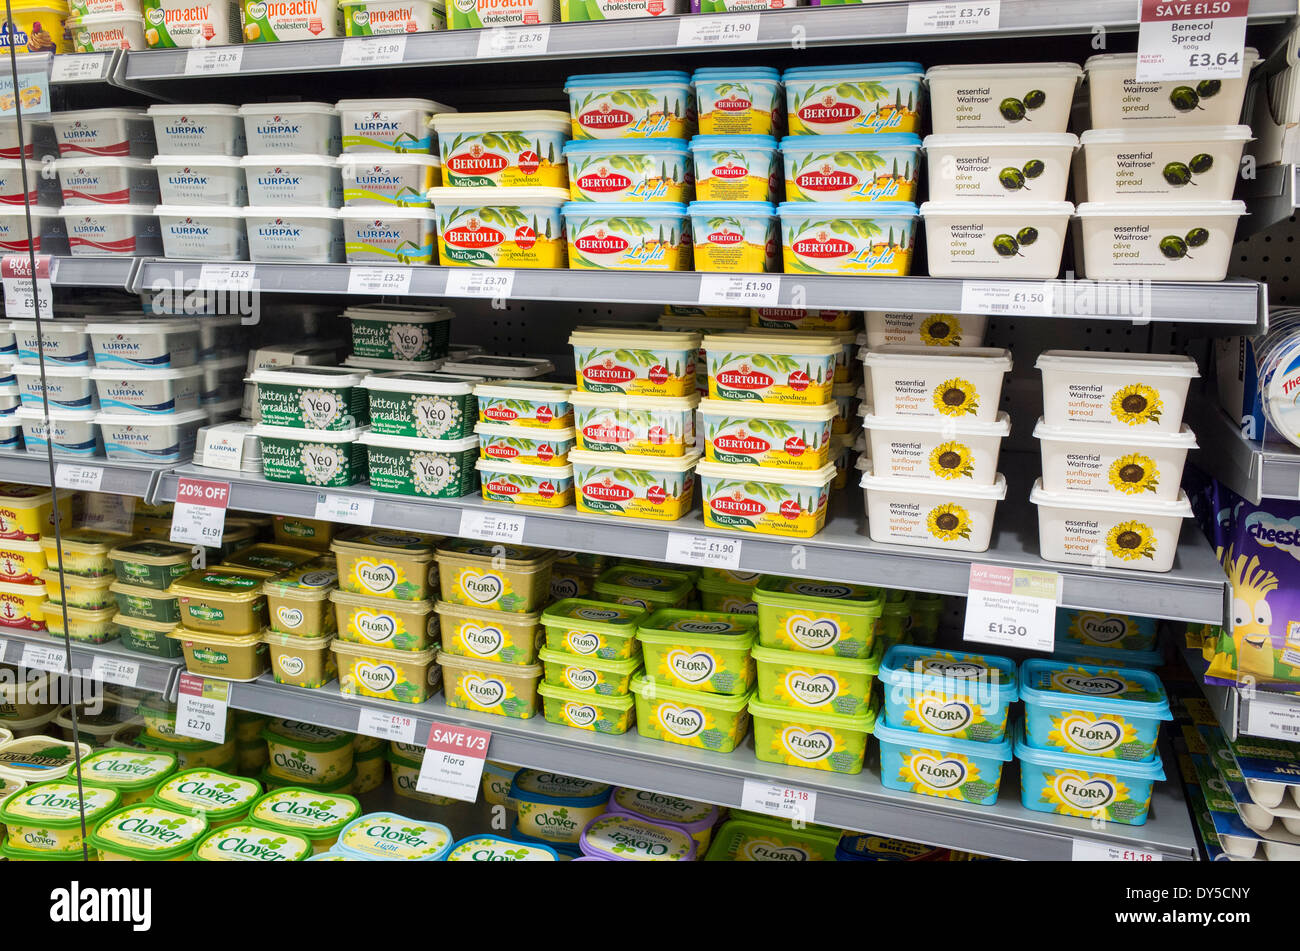 Tubs of Margarine Spreads on Supermarket Selves - Stock Image